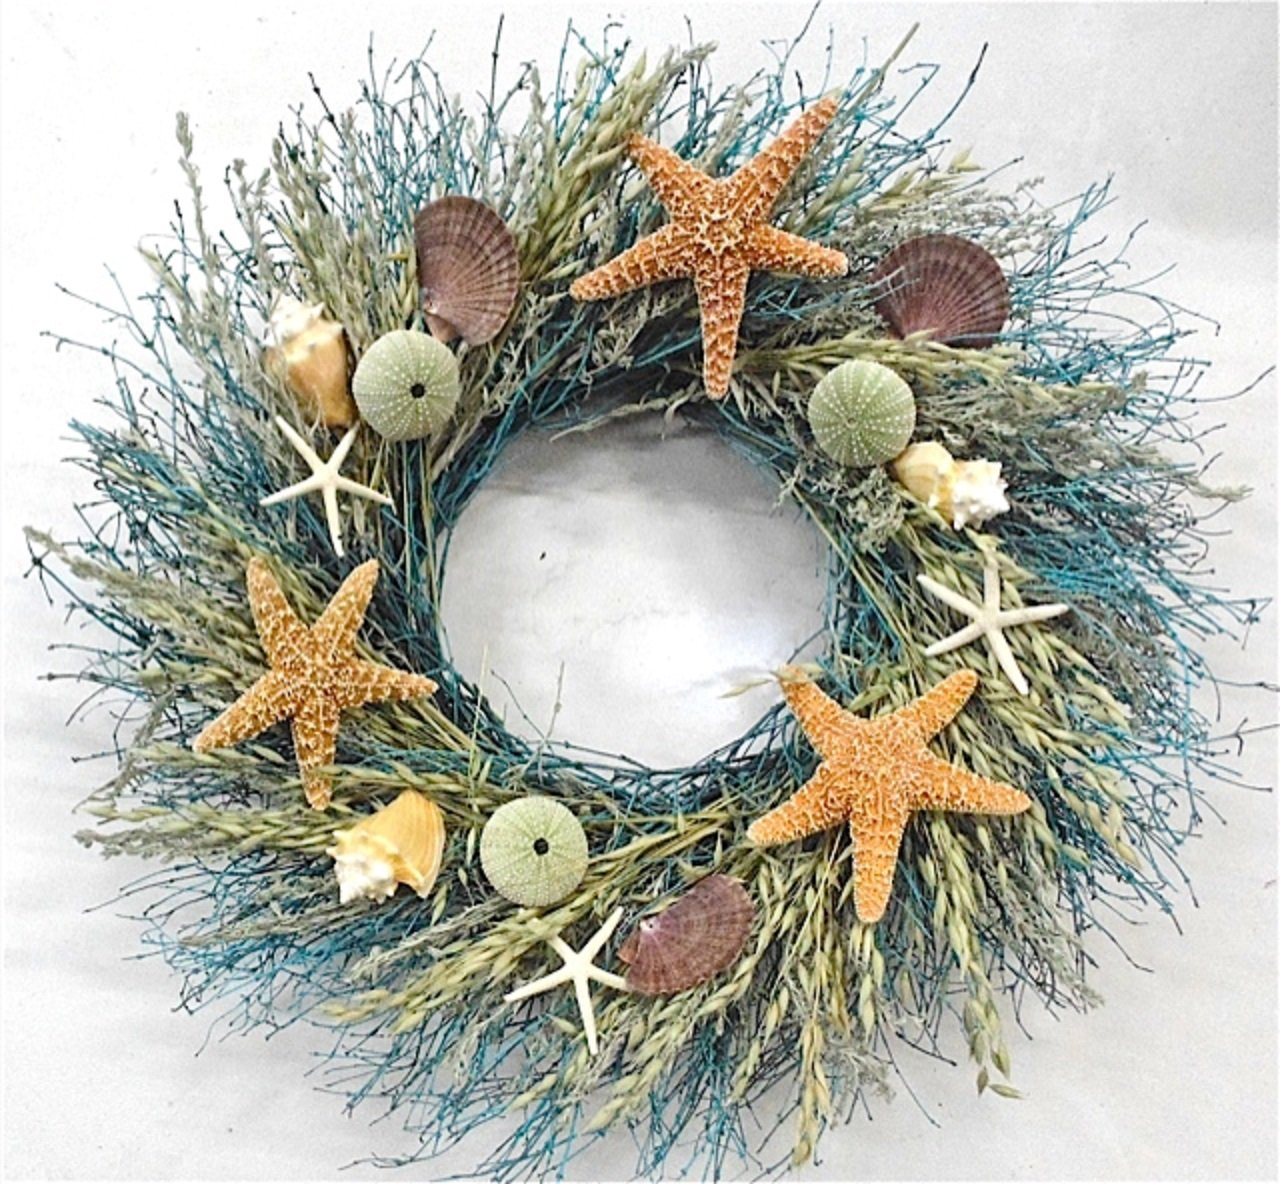 Amazon.com Walk On The Beach Summer Door Wreath Sea Shells Starfish for Coastal Cottage Kitchen Decor Use Indoors or Outdoors Home \u0026 Kitchen  sc 1 st  Amazon.com & Amazon.com: Walk On The Beach Summer Door Wreath Sea Shells Starfish ...